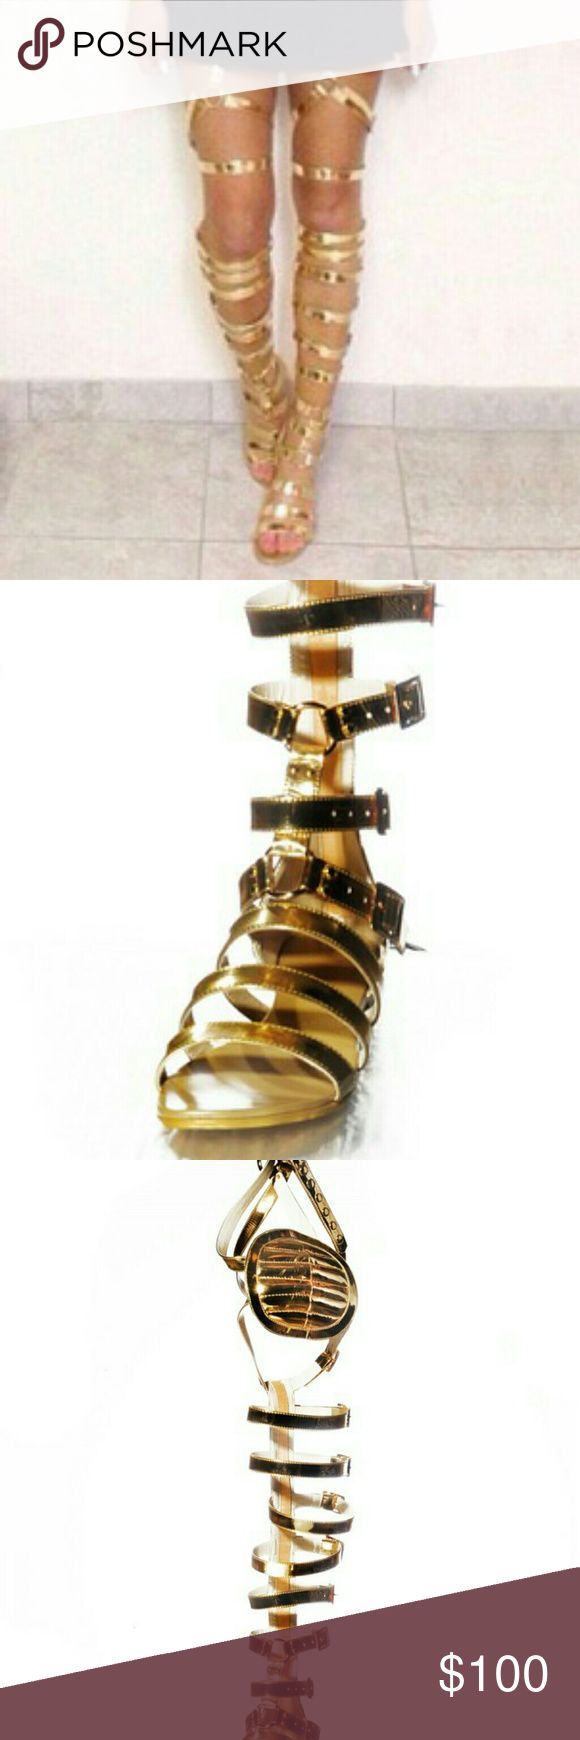 Hans Von Lila  GOLD PATENT LEATHER SANDAL/BOOTS These are FIERCE  HANS VON LILA GOLD GLADIATOR BOOTS/SANDALS.    VERY GENTLY USED.  Only worn once or twice. Hans Von Lila Shoes Lace Up Boots